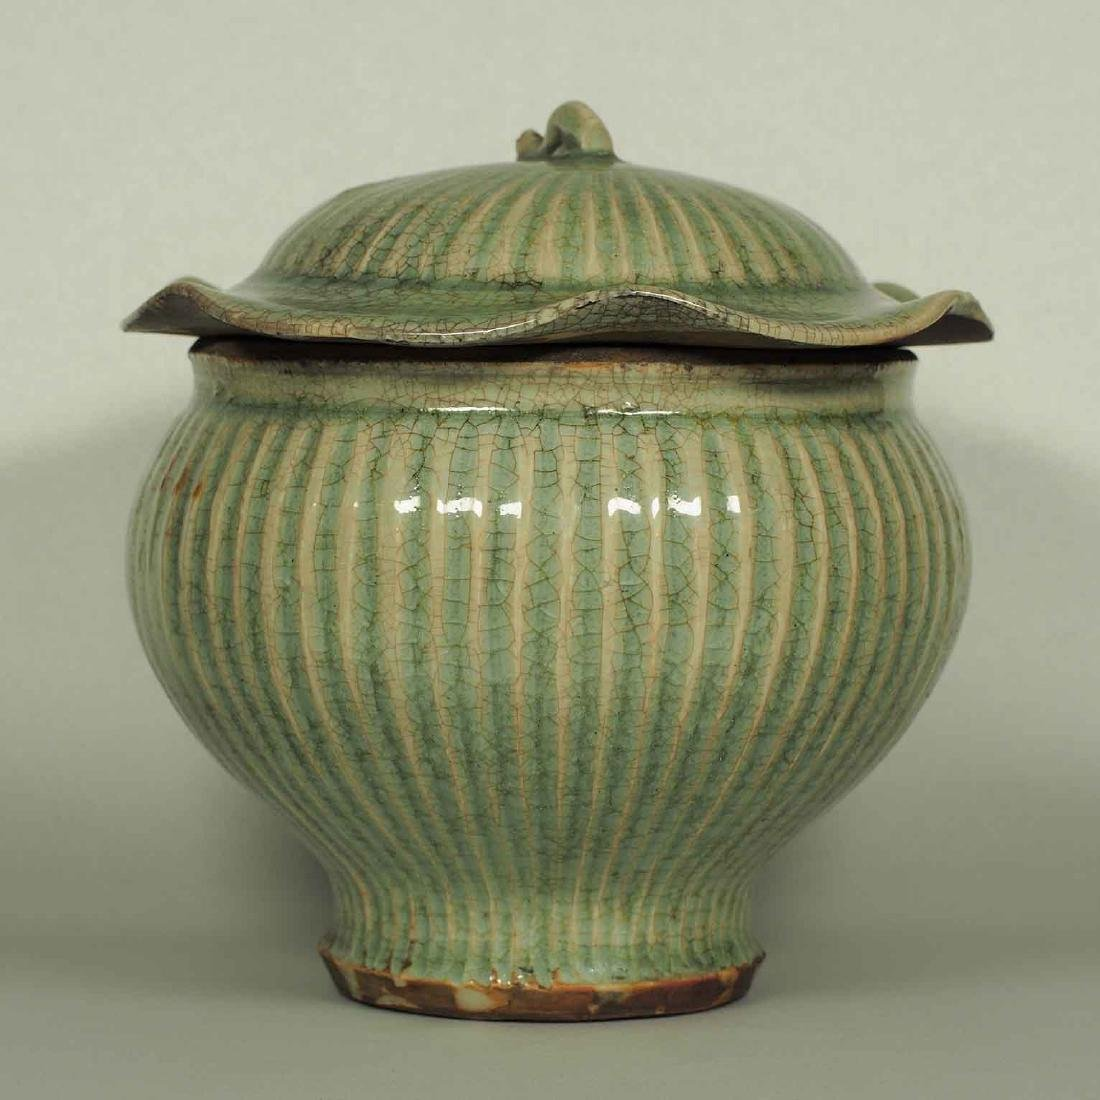 Longquan Fluted Jar with Lid, late Southern Song-early - 2